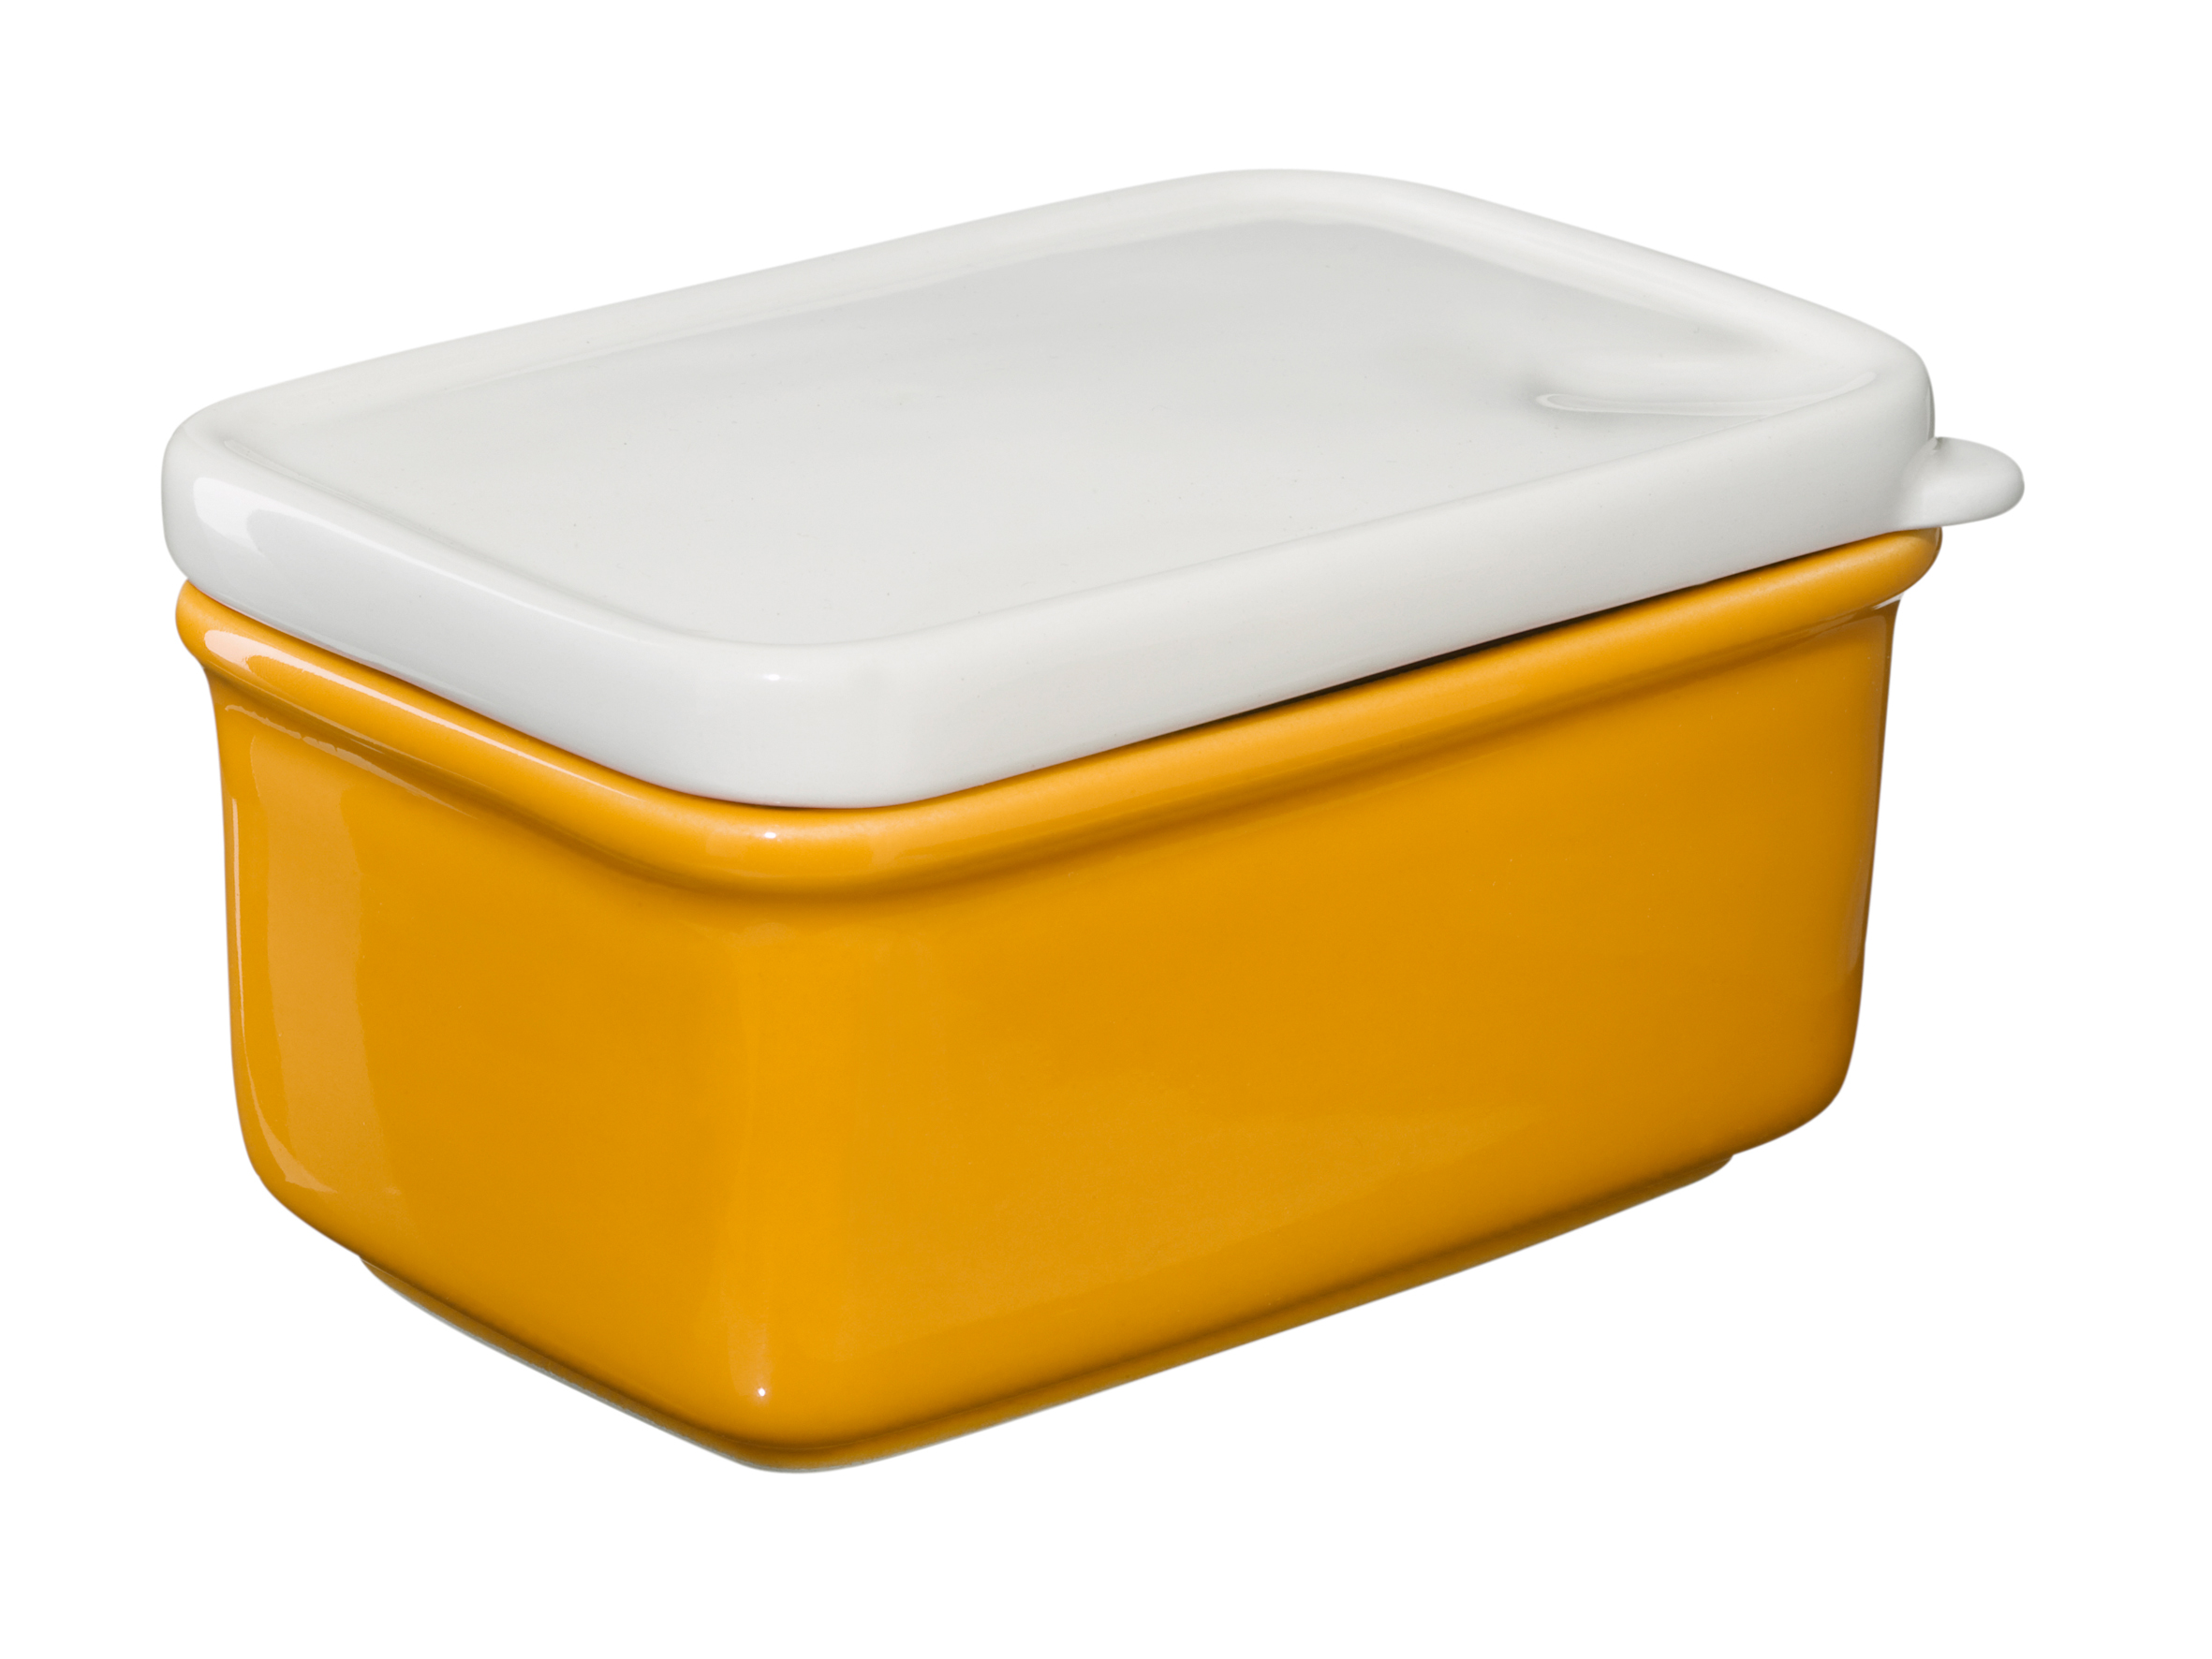 Butter Dish - Is that Plastic? - Yellow